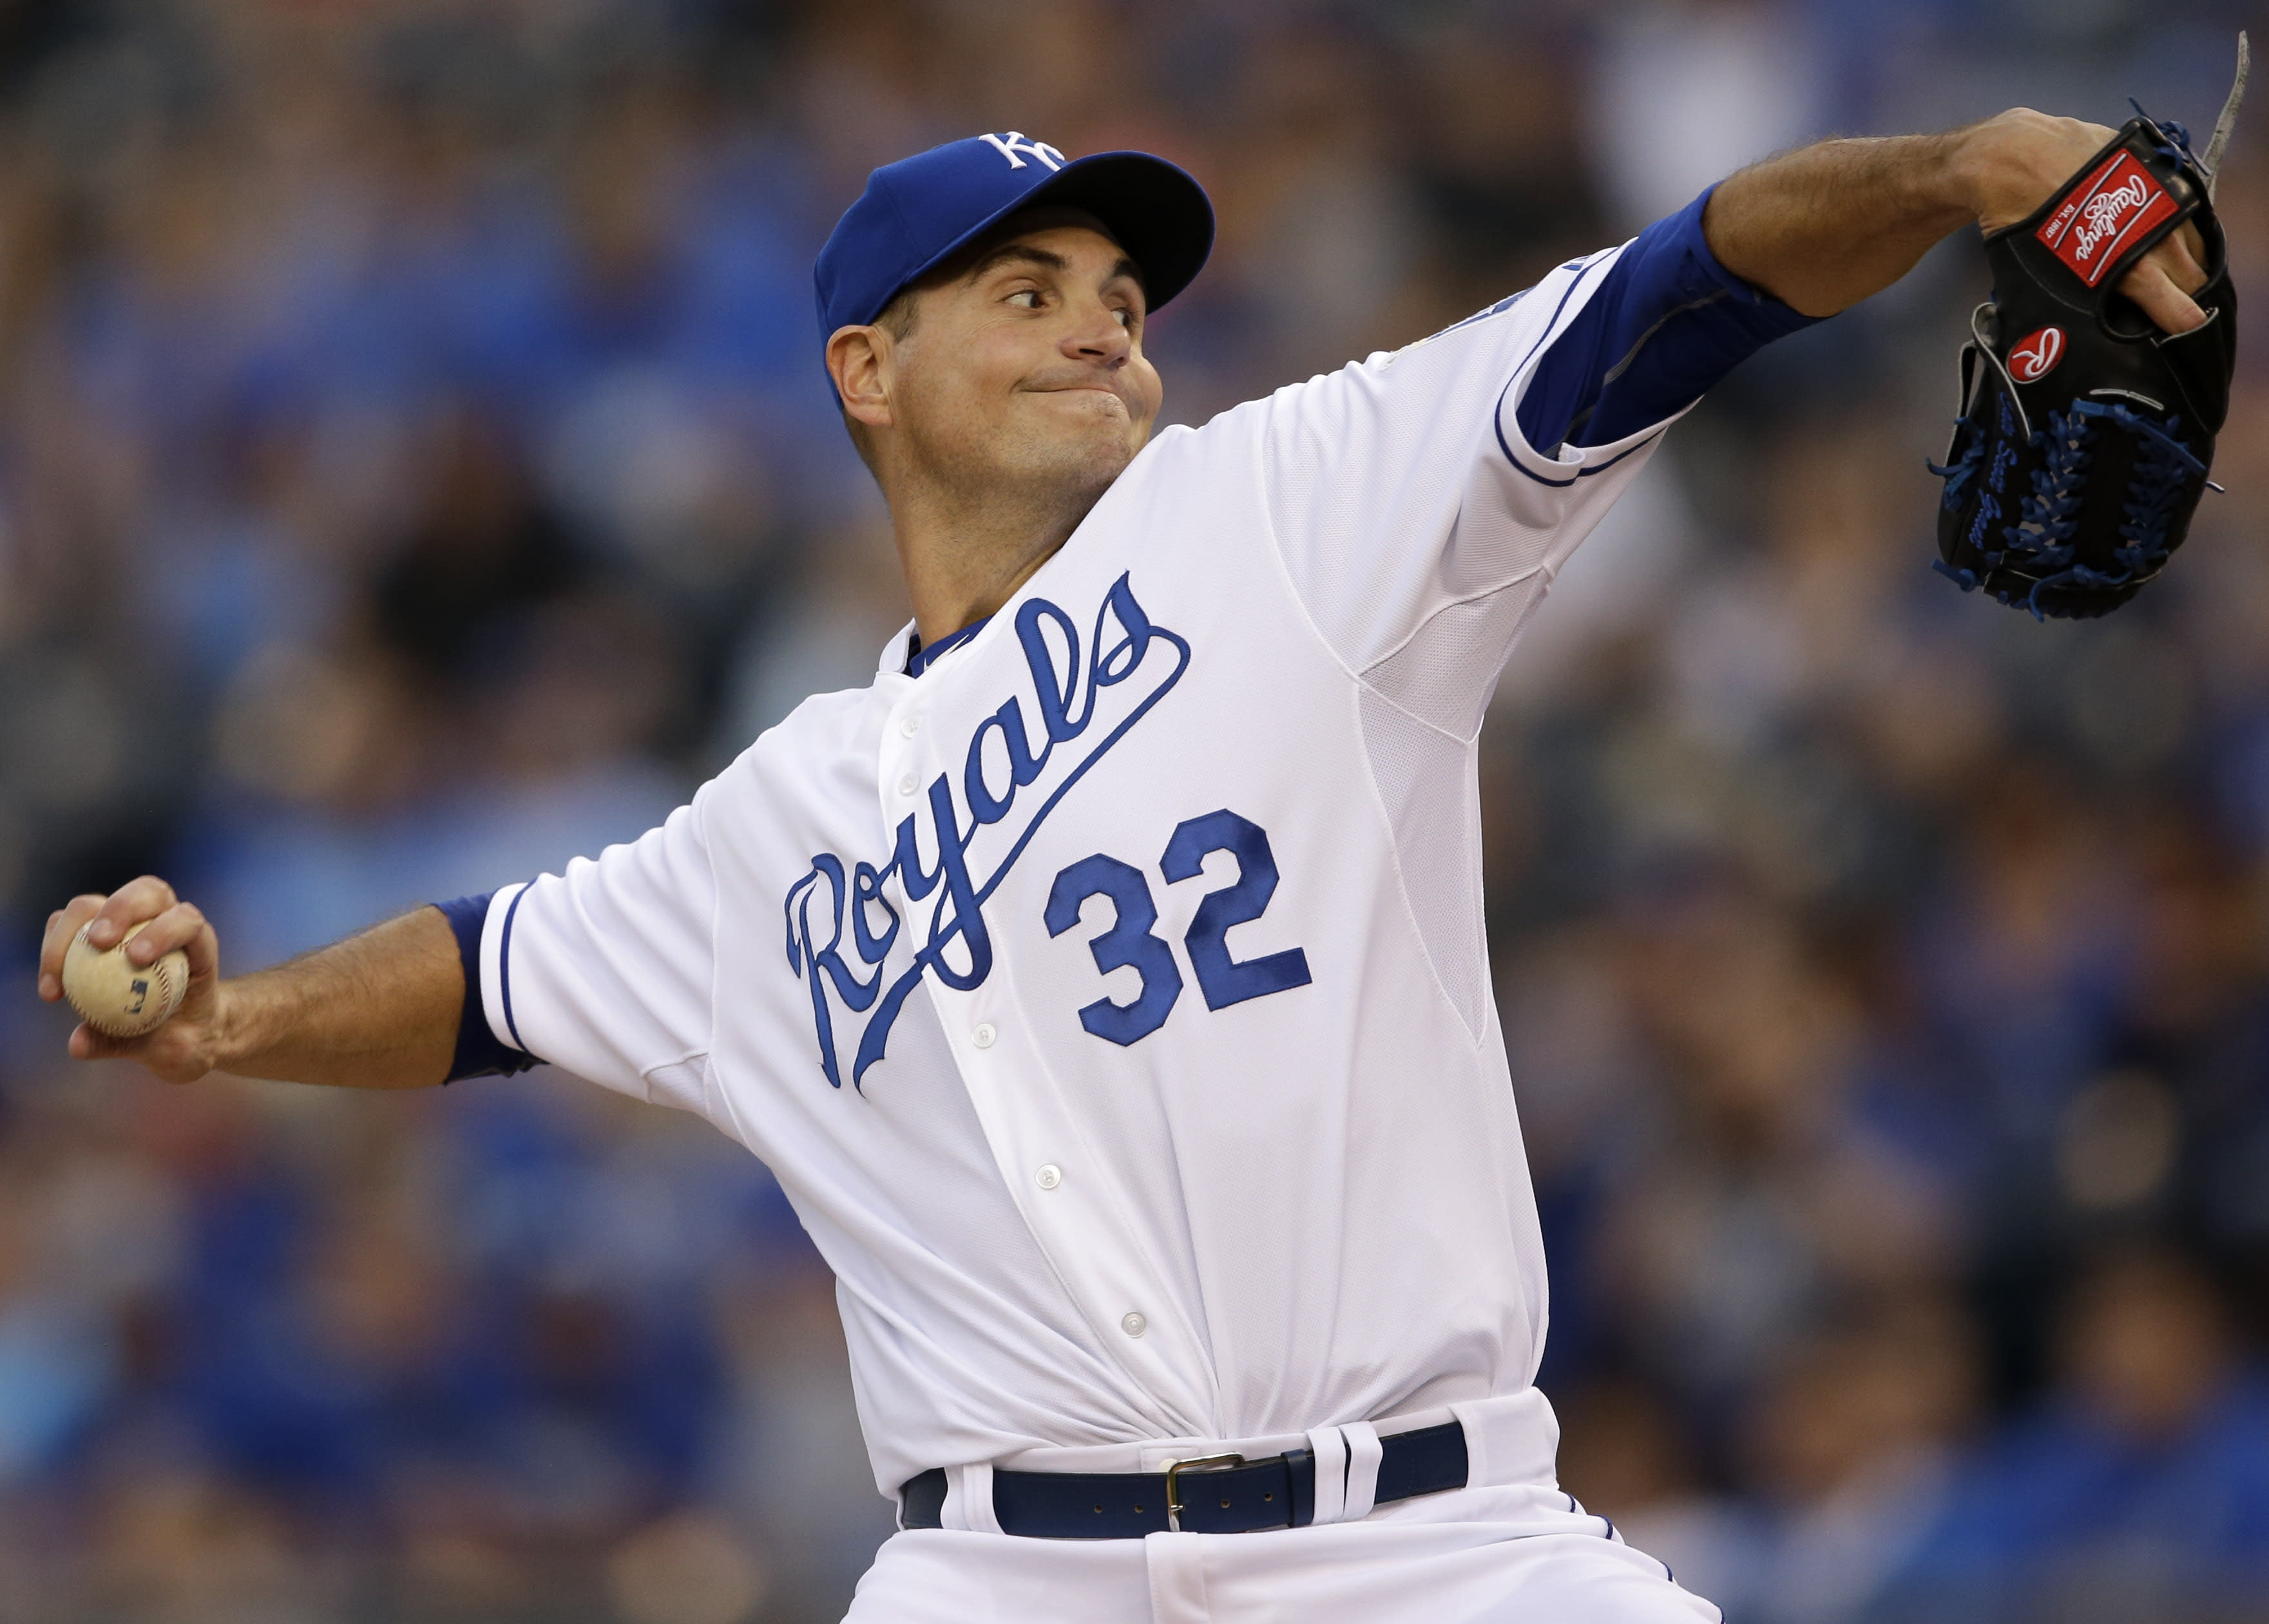 Young throws 5 no-hit innings in Royals' 4-1 win over Tigers